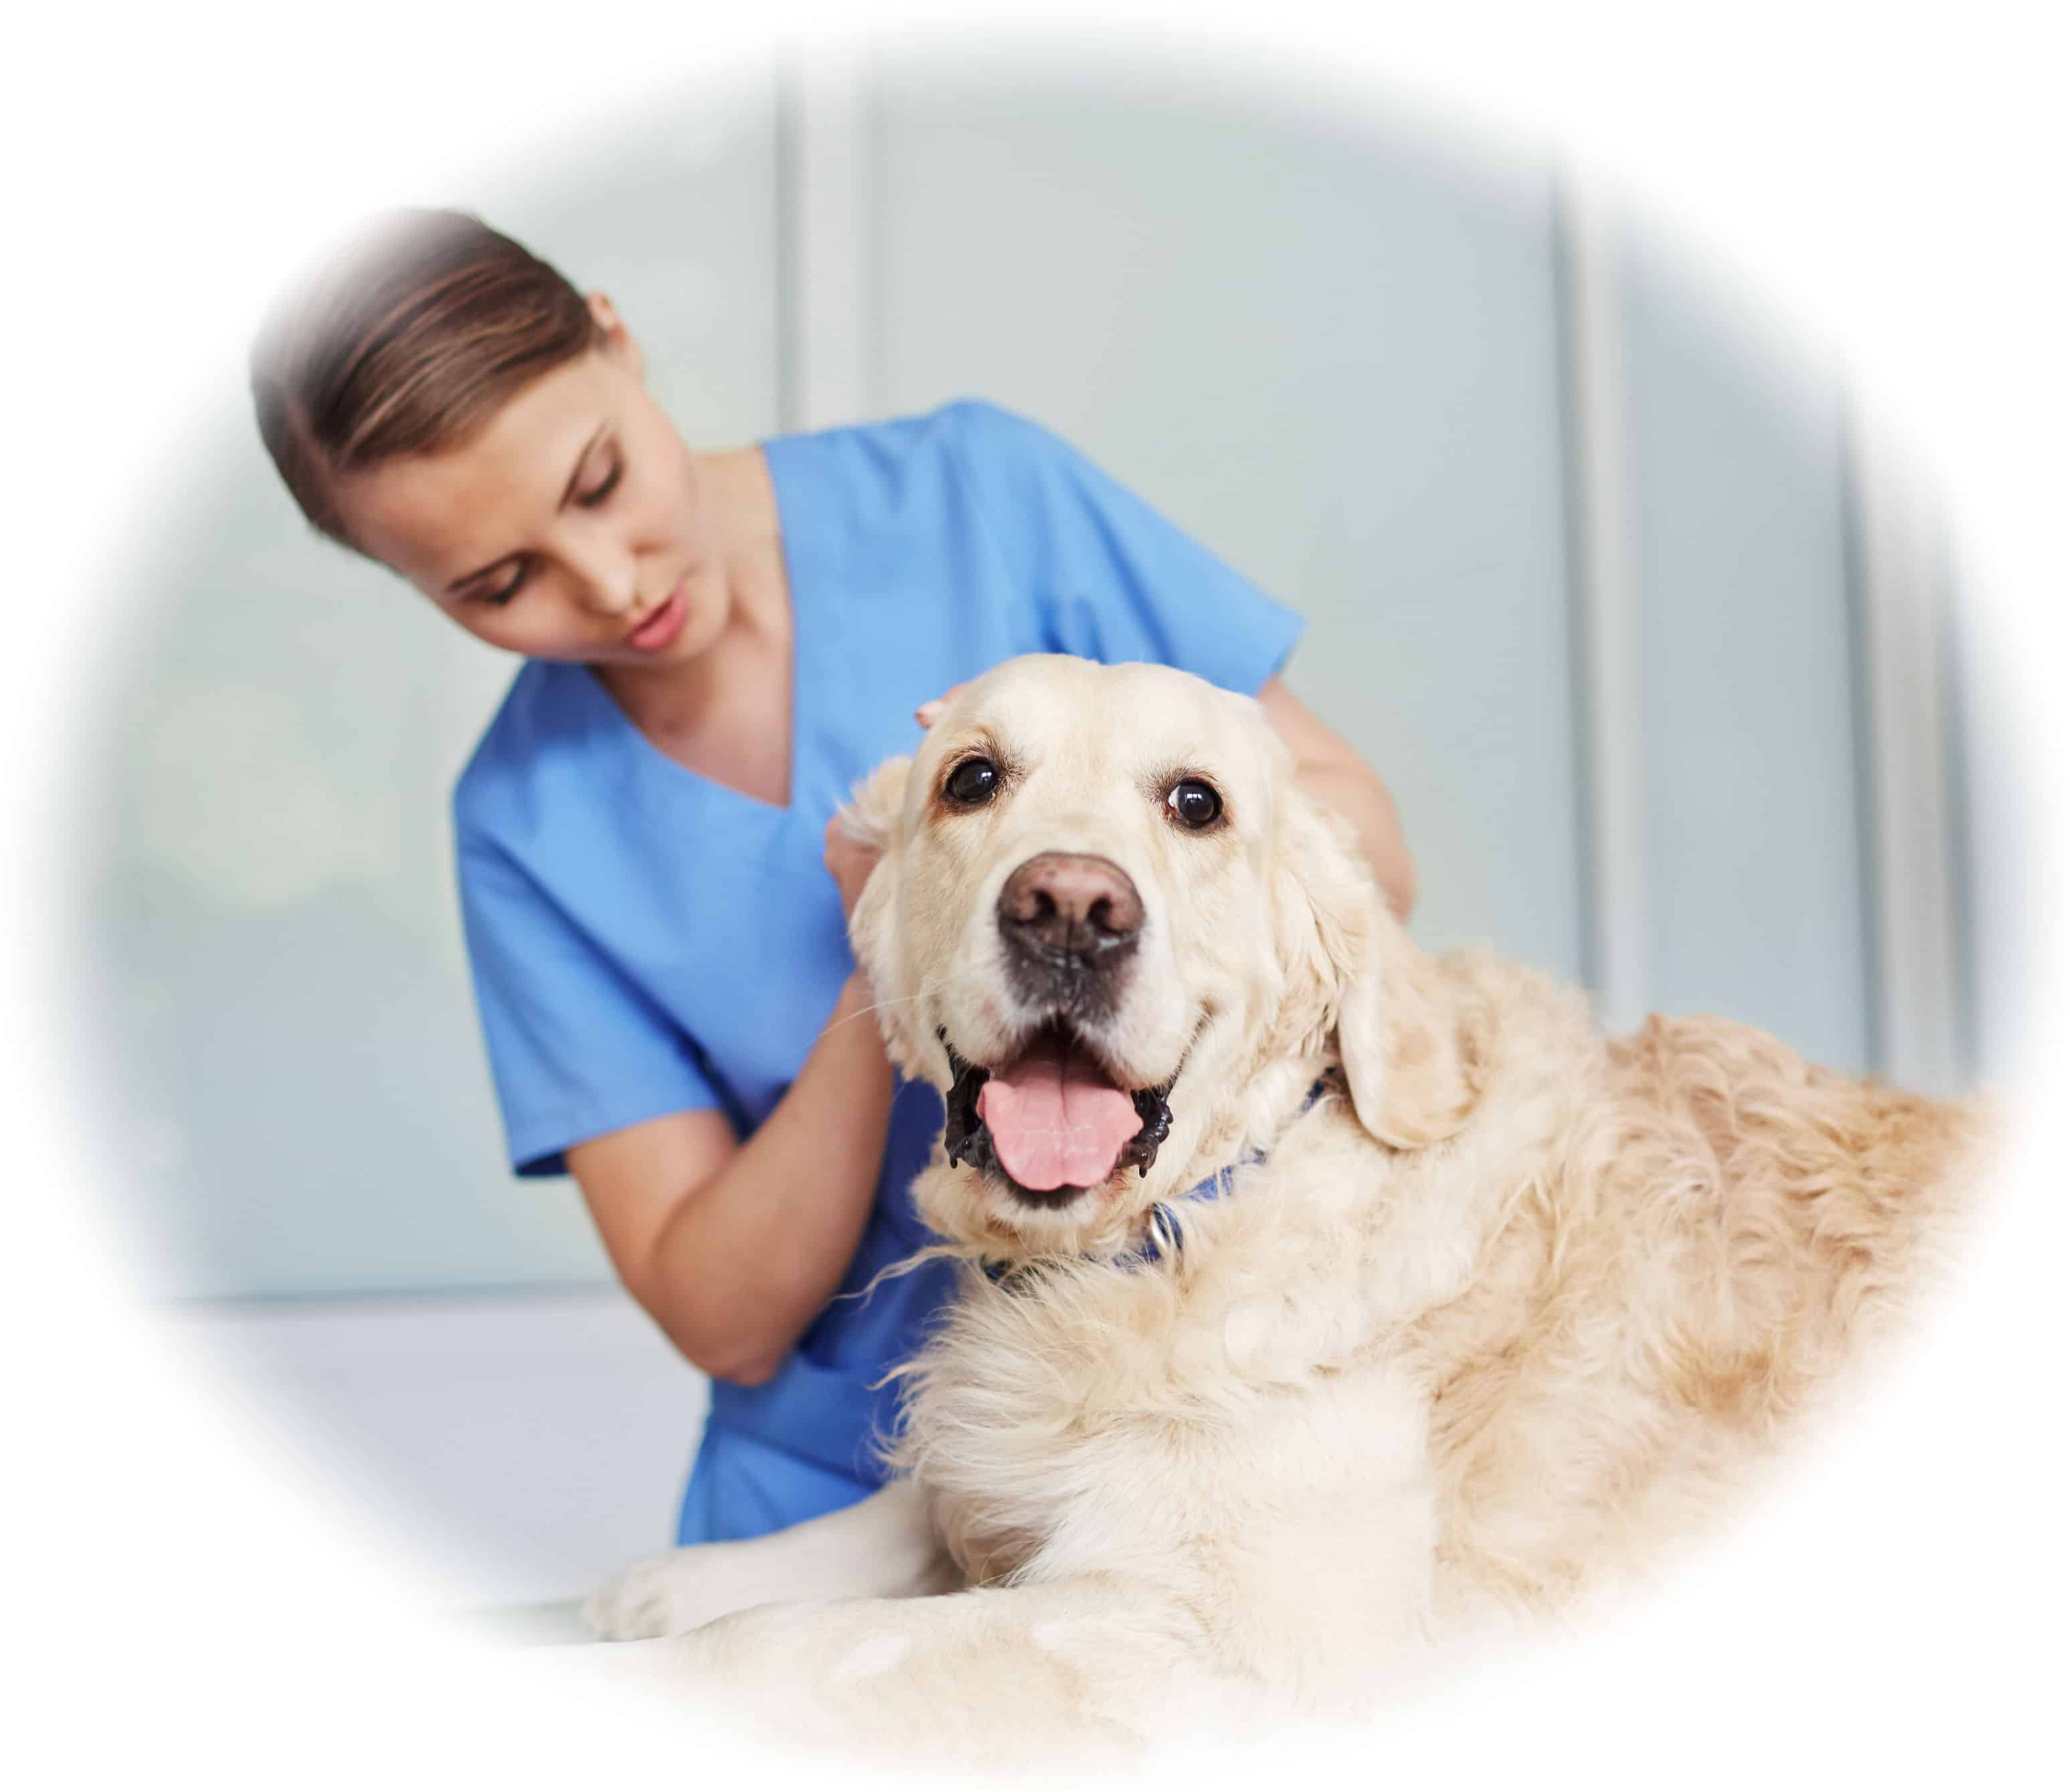 Entry requirements and prerequisite for Veterinary Nurse Course